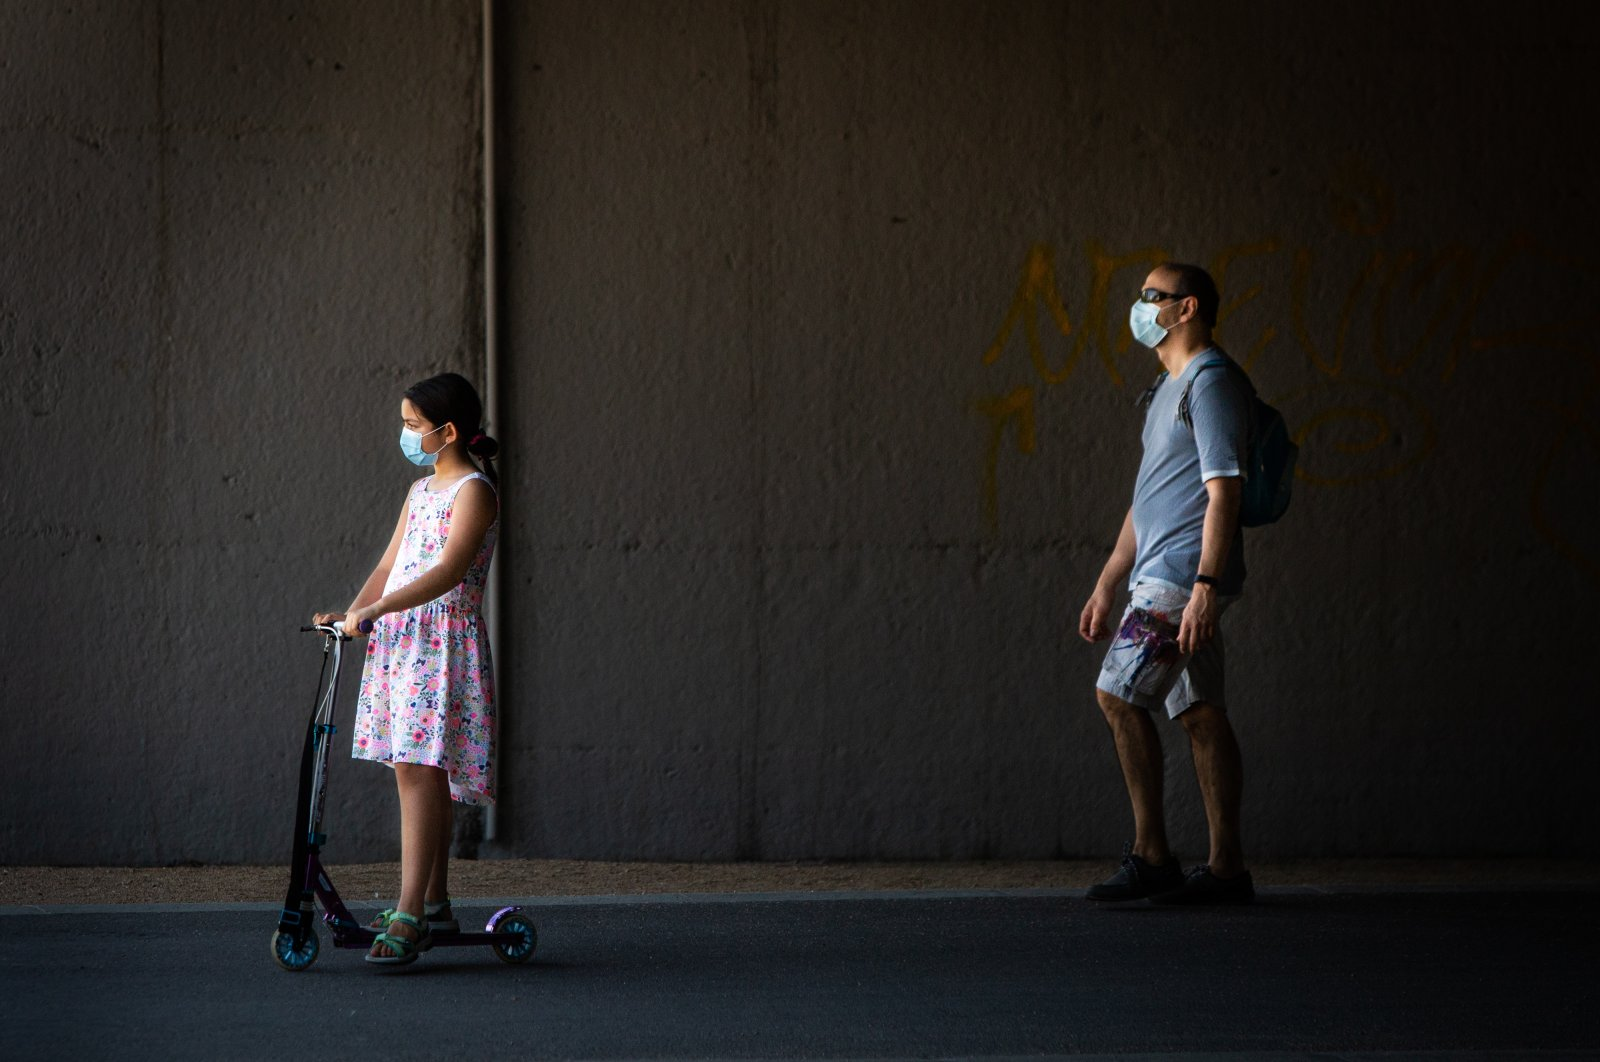 A little girl wearing a protective face mask rides an electric scooter as her father walks behind her through Madrid Rio Park amid the coronavirus outbreak, Madrid, Spain, May 25, 2020. (Photo by Getty Images)